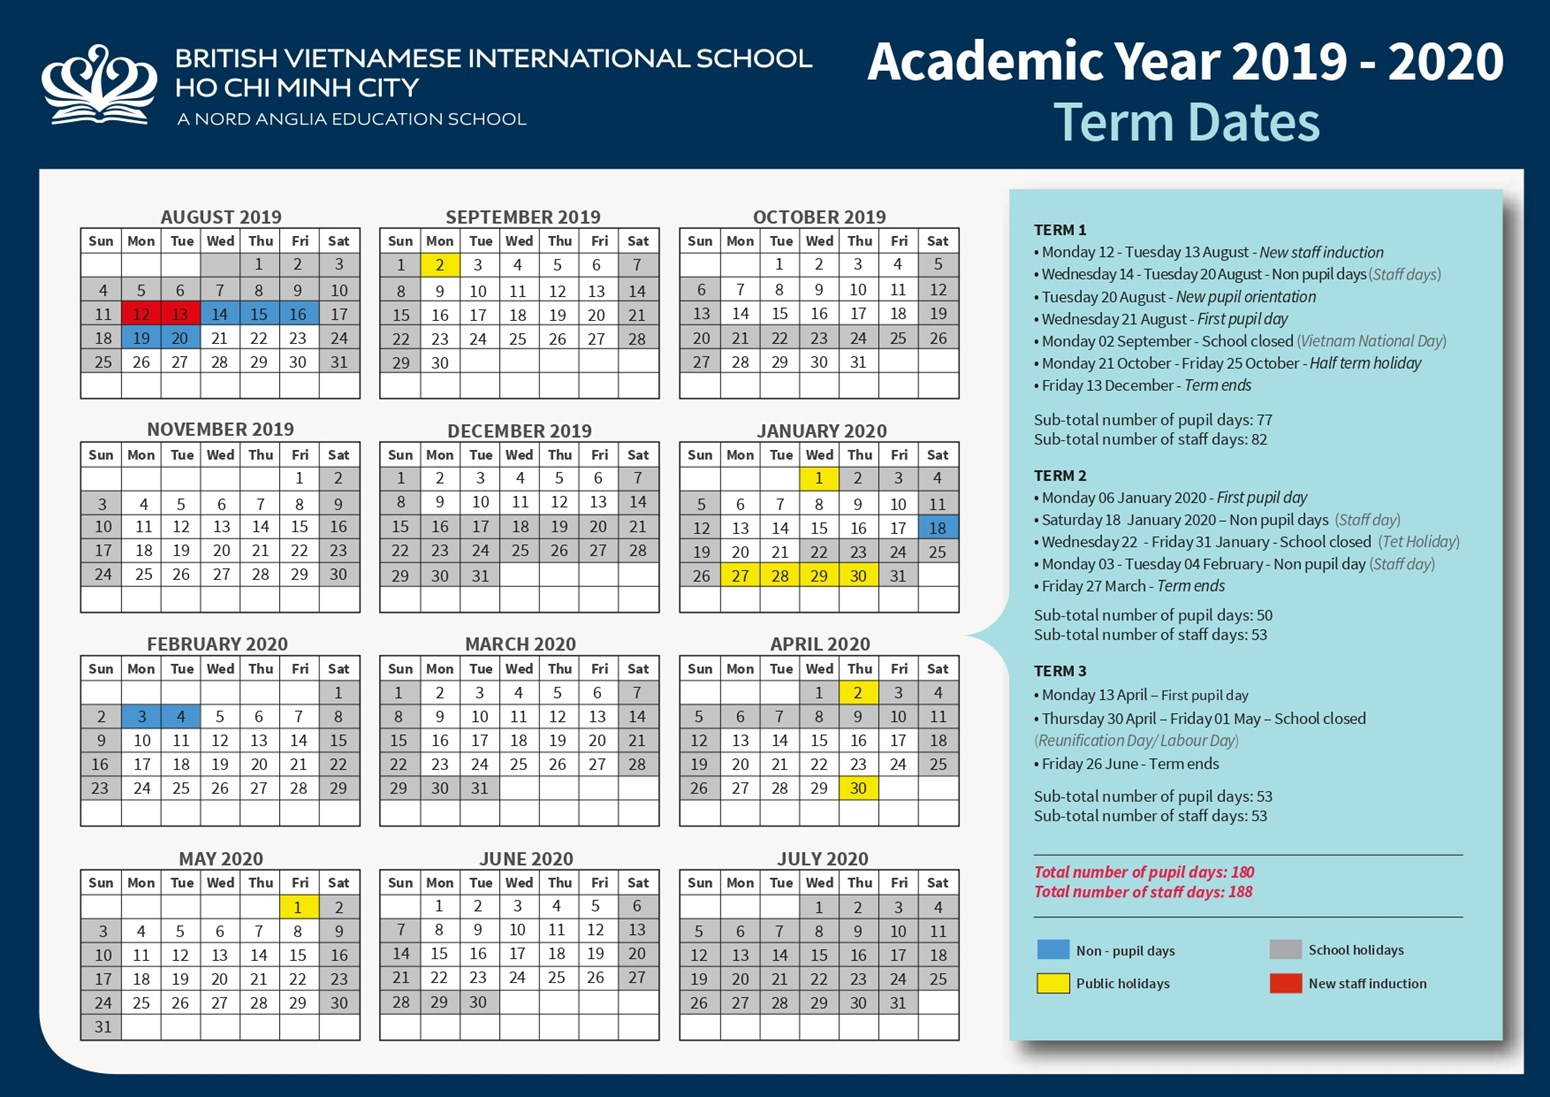 Cnu Academic Calendar 2022.C H R I S T O P H E R N E W P O R T U N I V E R S I T Y C A L E N D A R Zonealarm Results